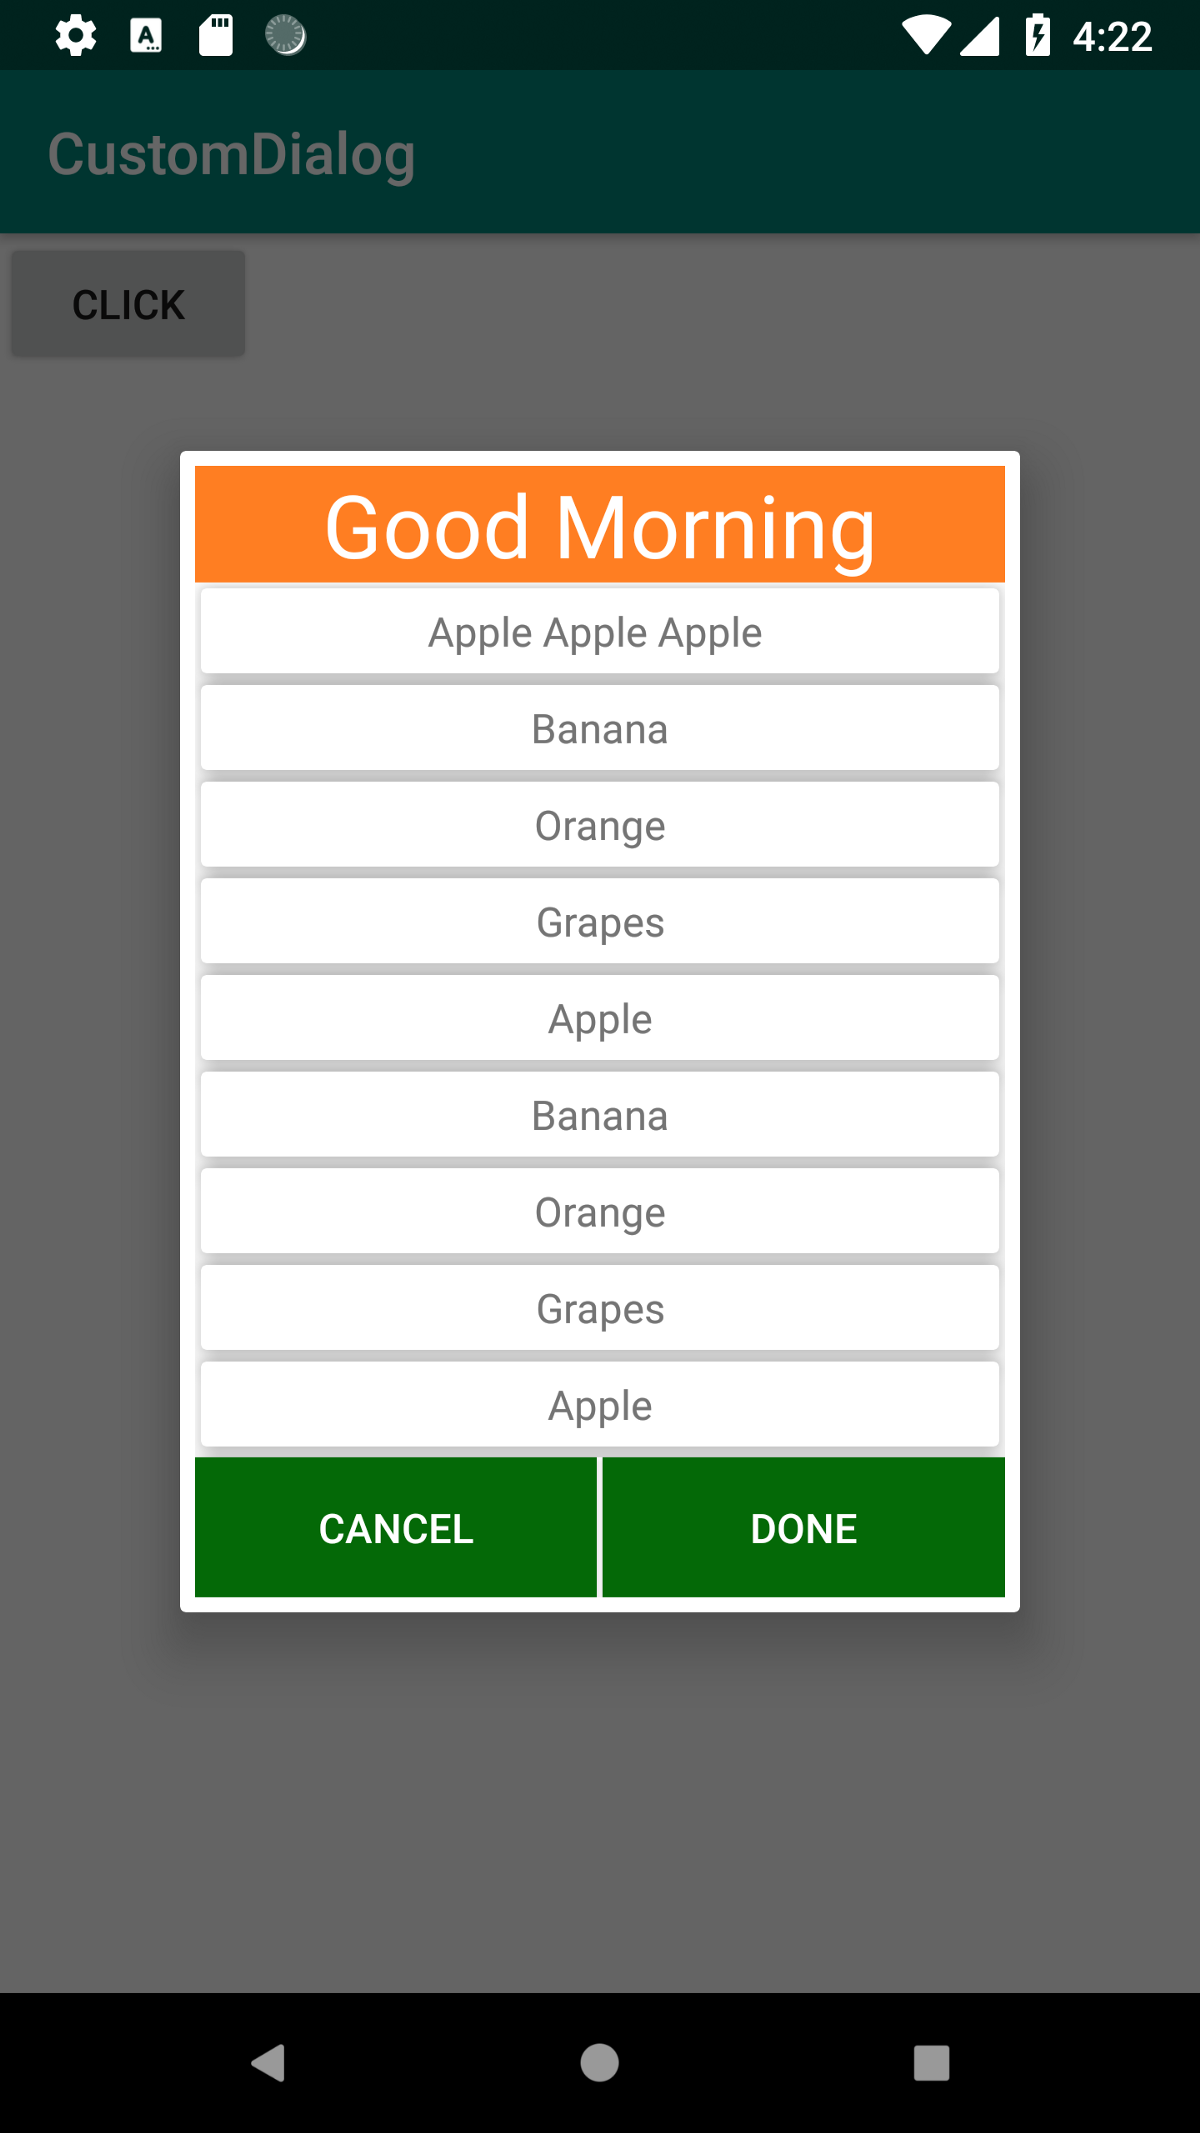 Android - Custom Dialog with List Of Items (Java & Kotlin) !!